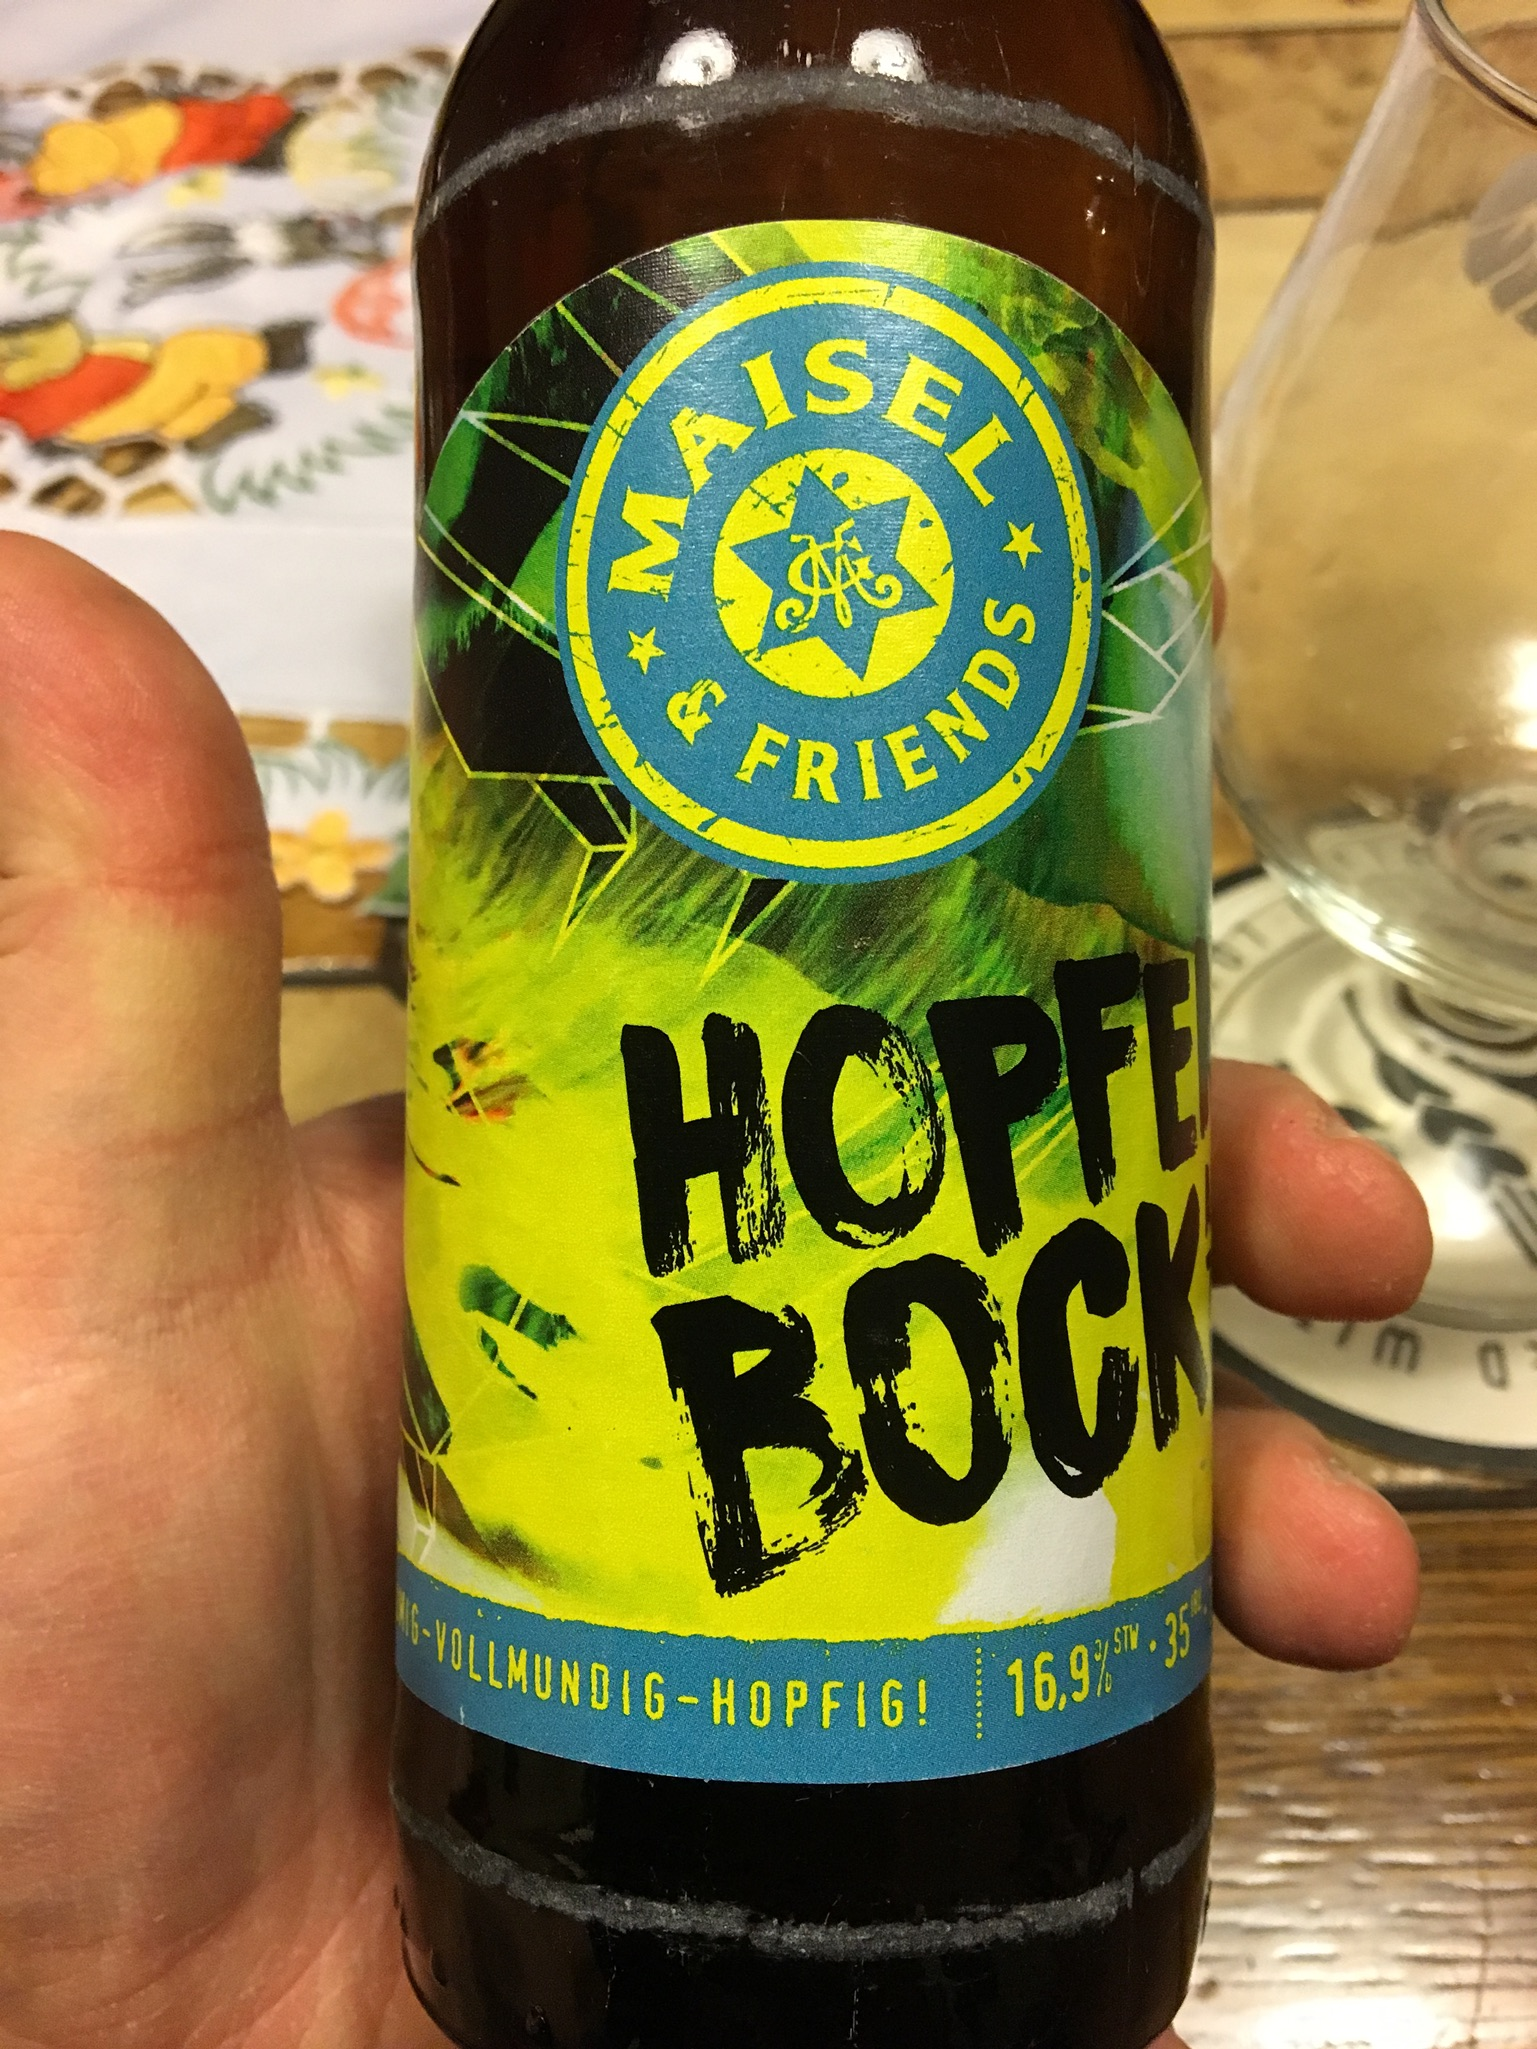 Maisel & Friends – Hopfenbock